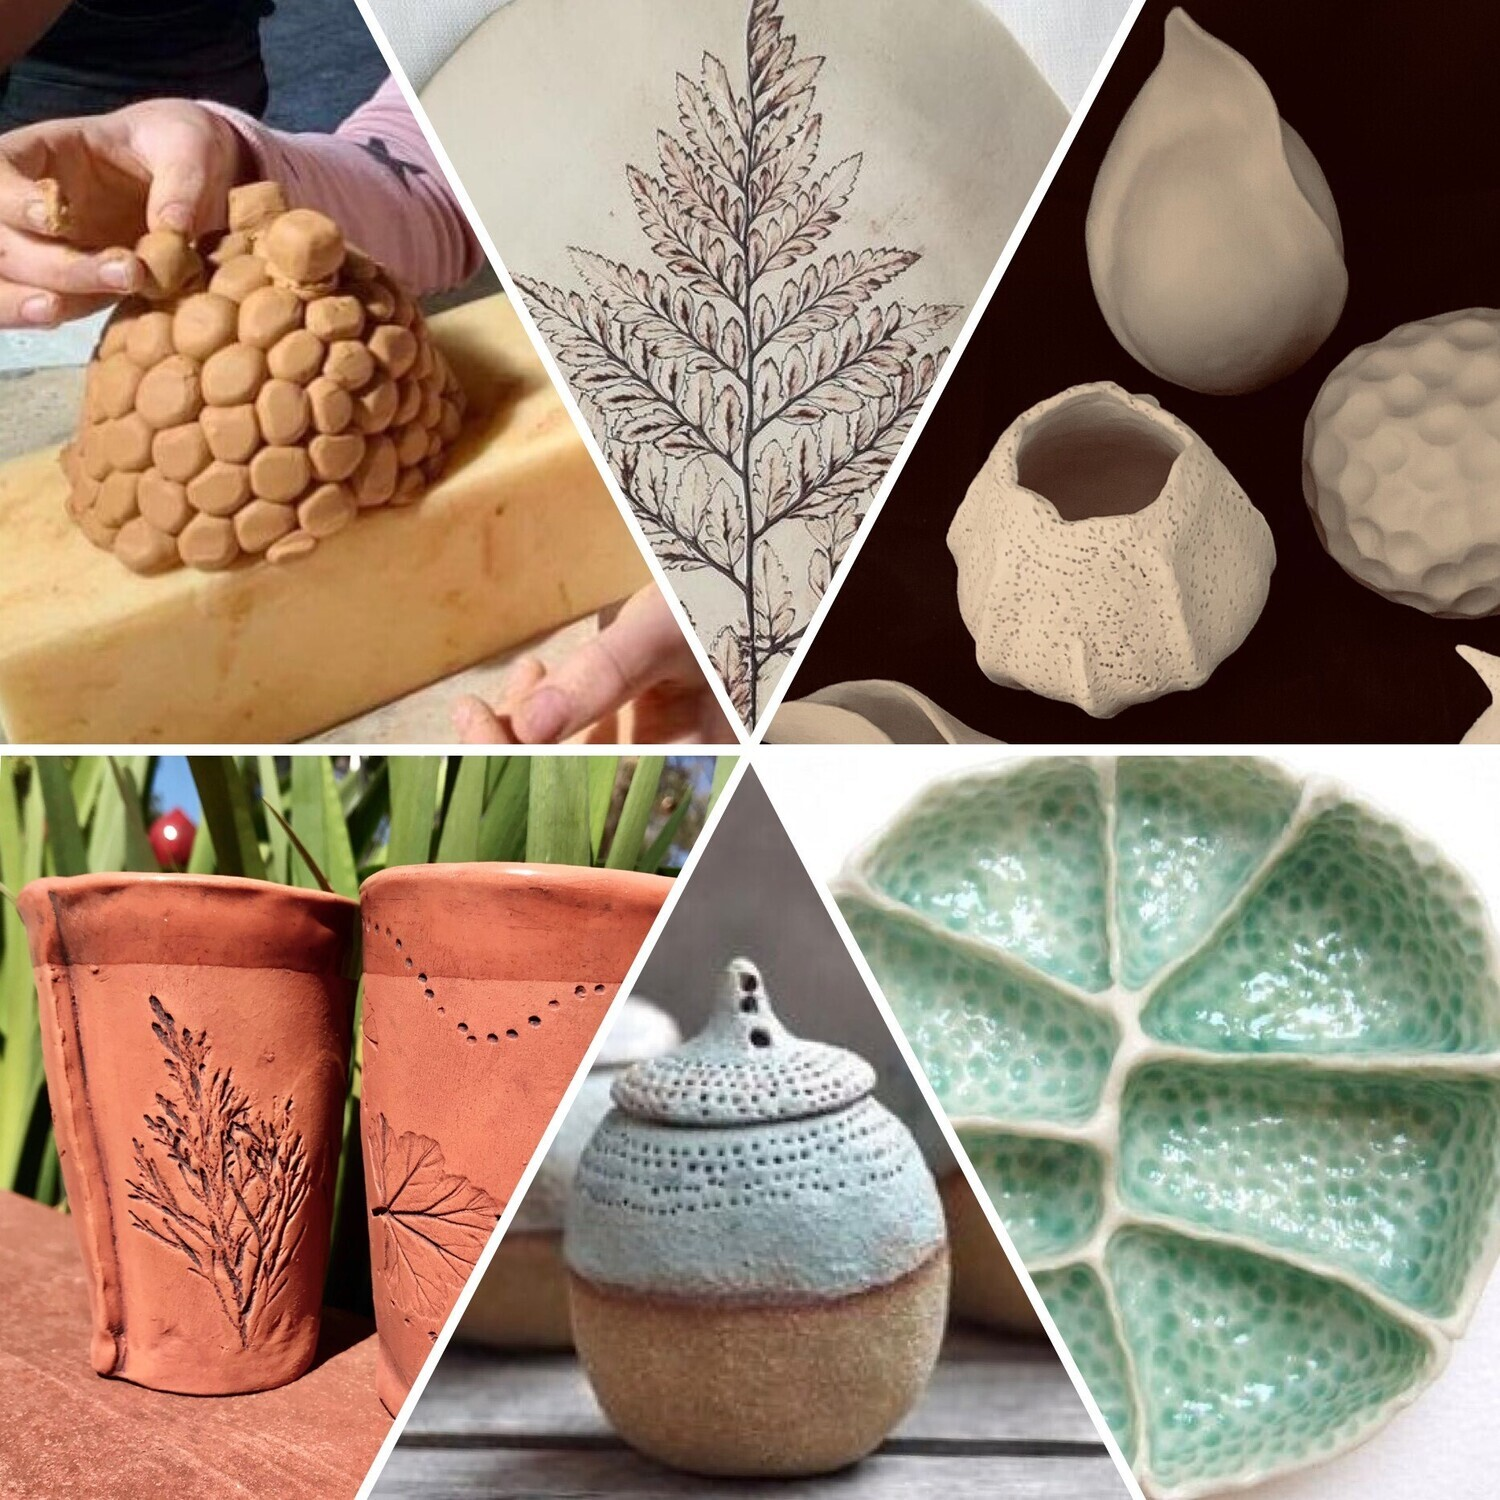 Hand Building Pottery Workshop. 18th June 2-4pm